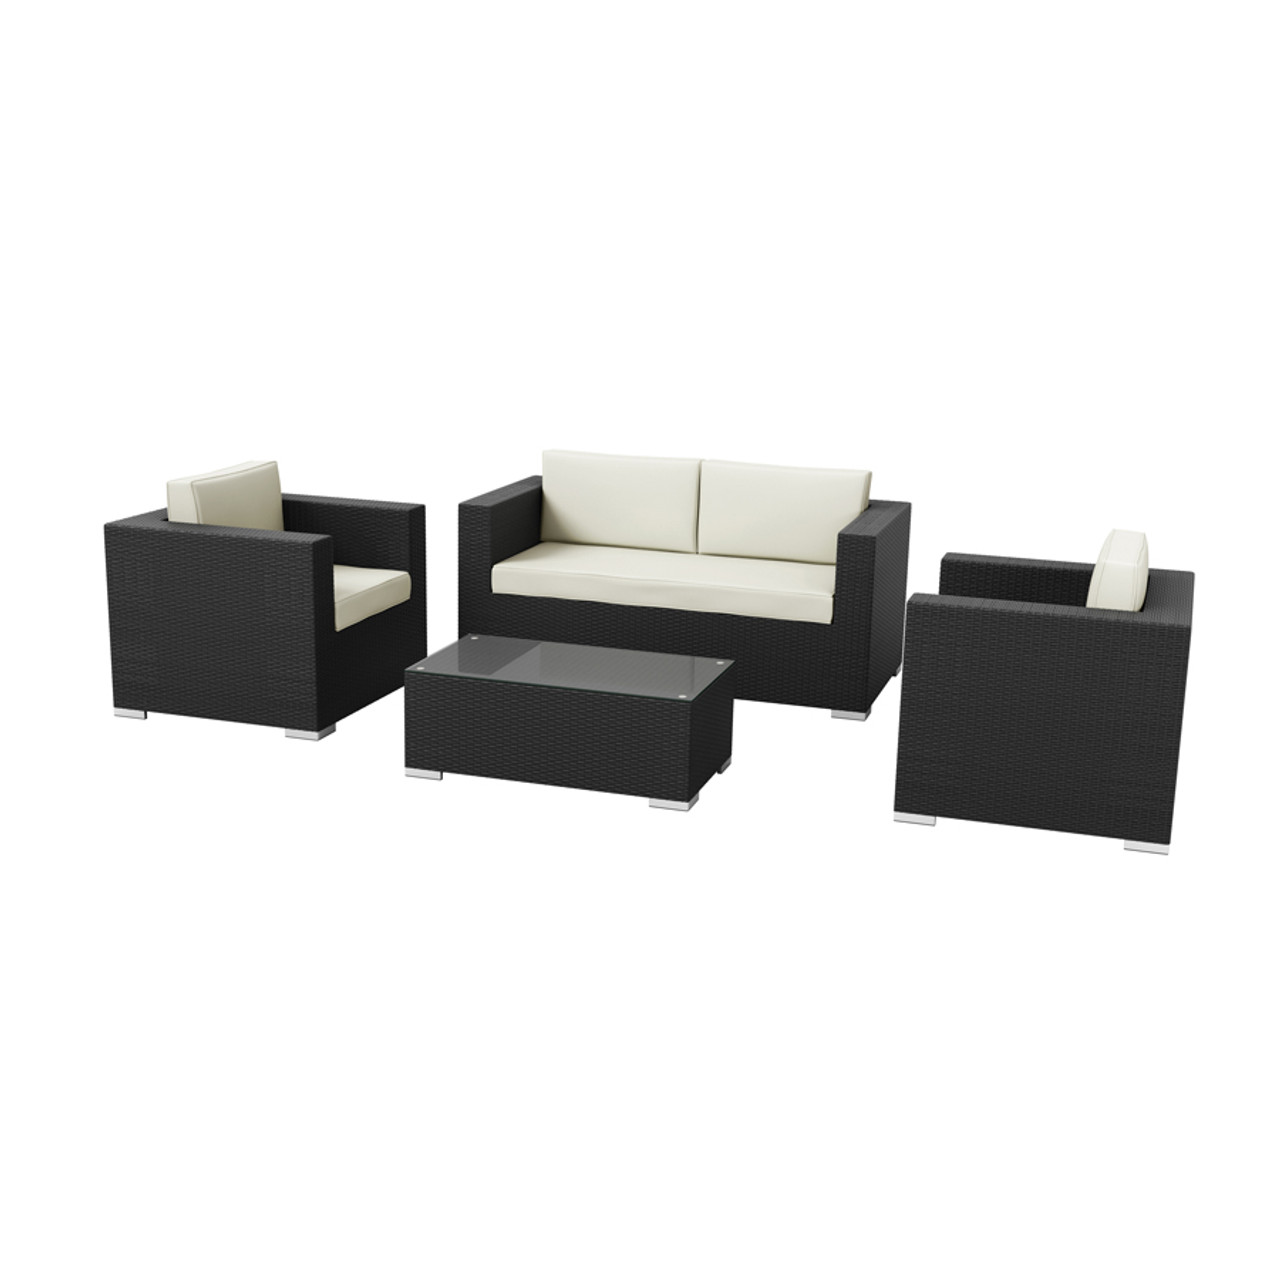 HAMPTON 4 Piece Sofa Set – ZA.446CT – Black